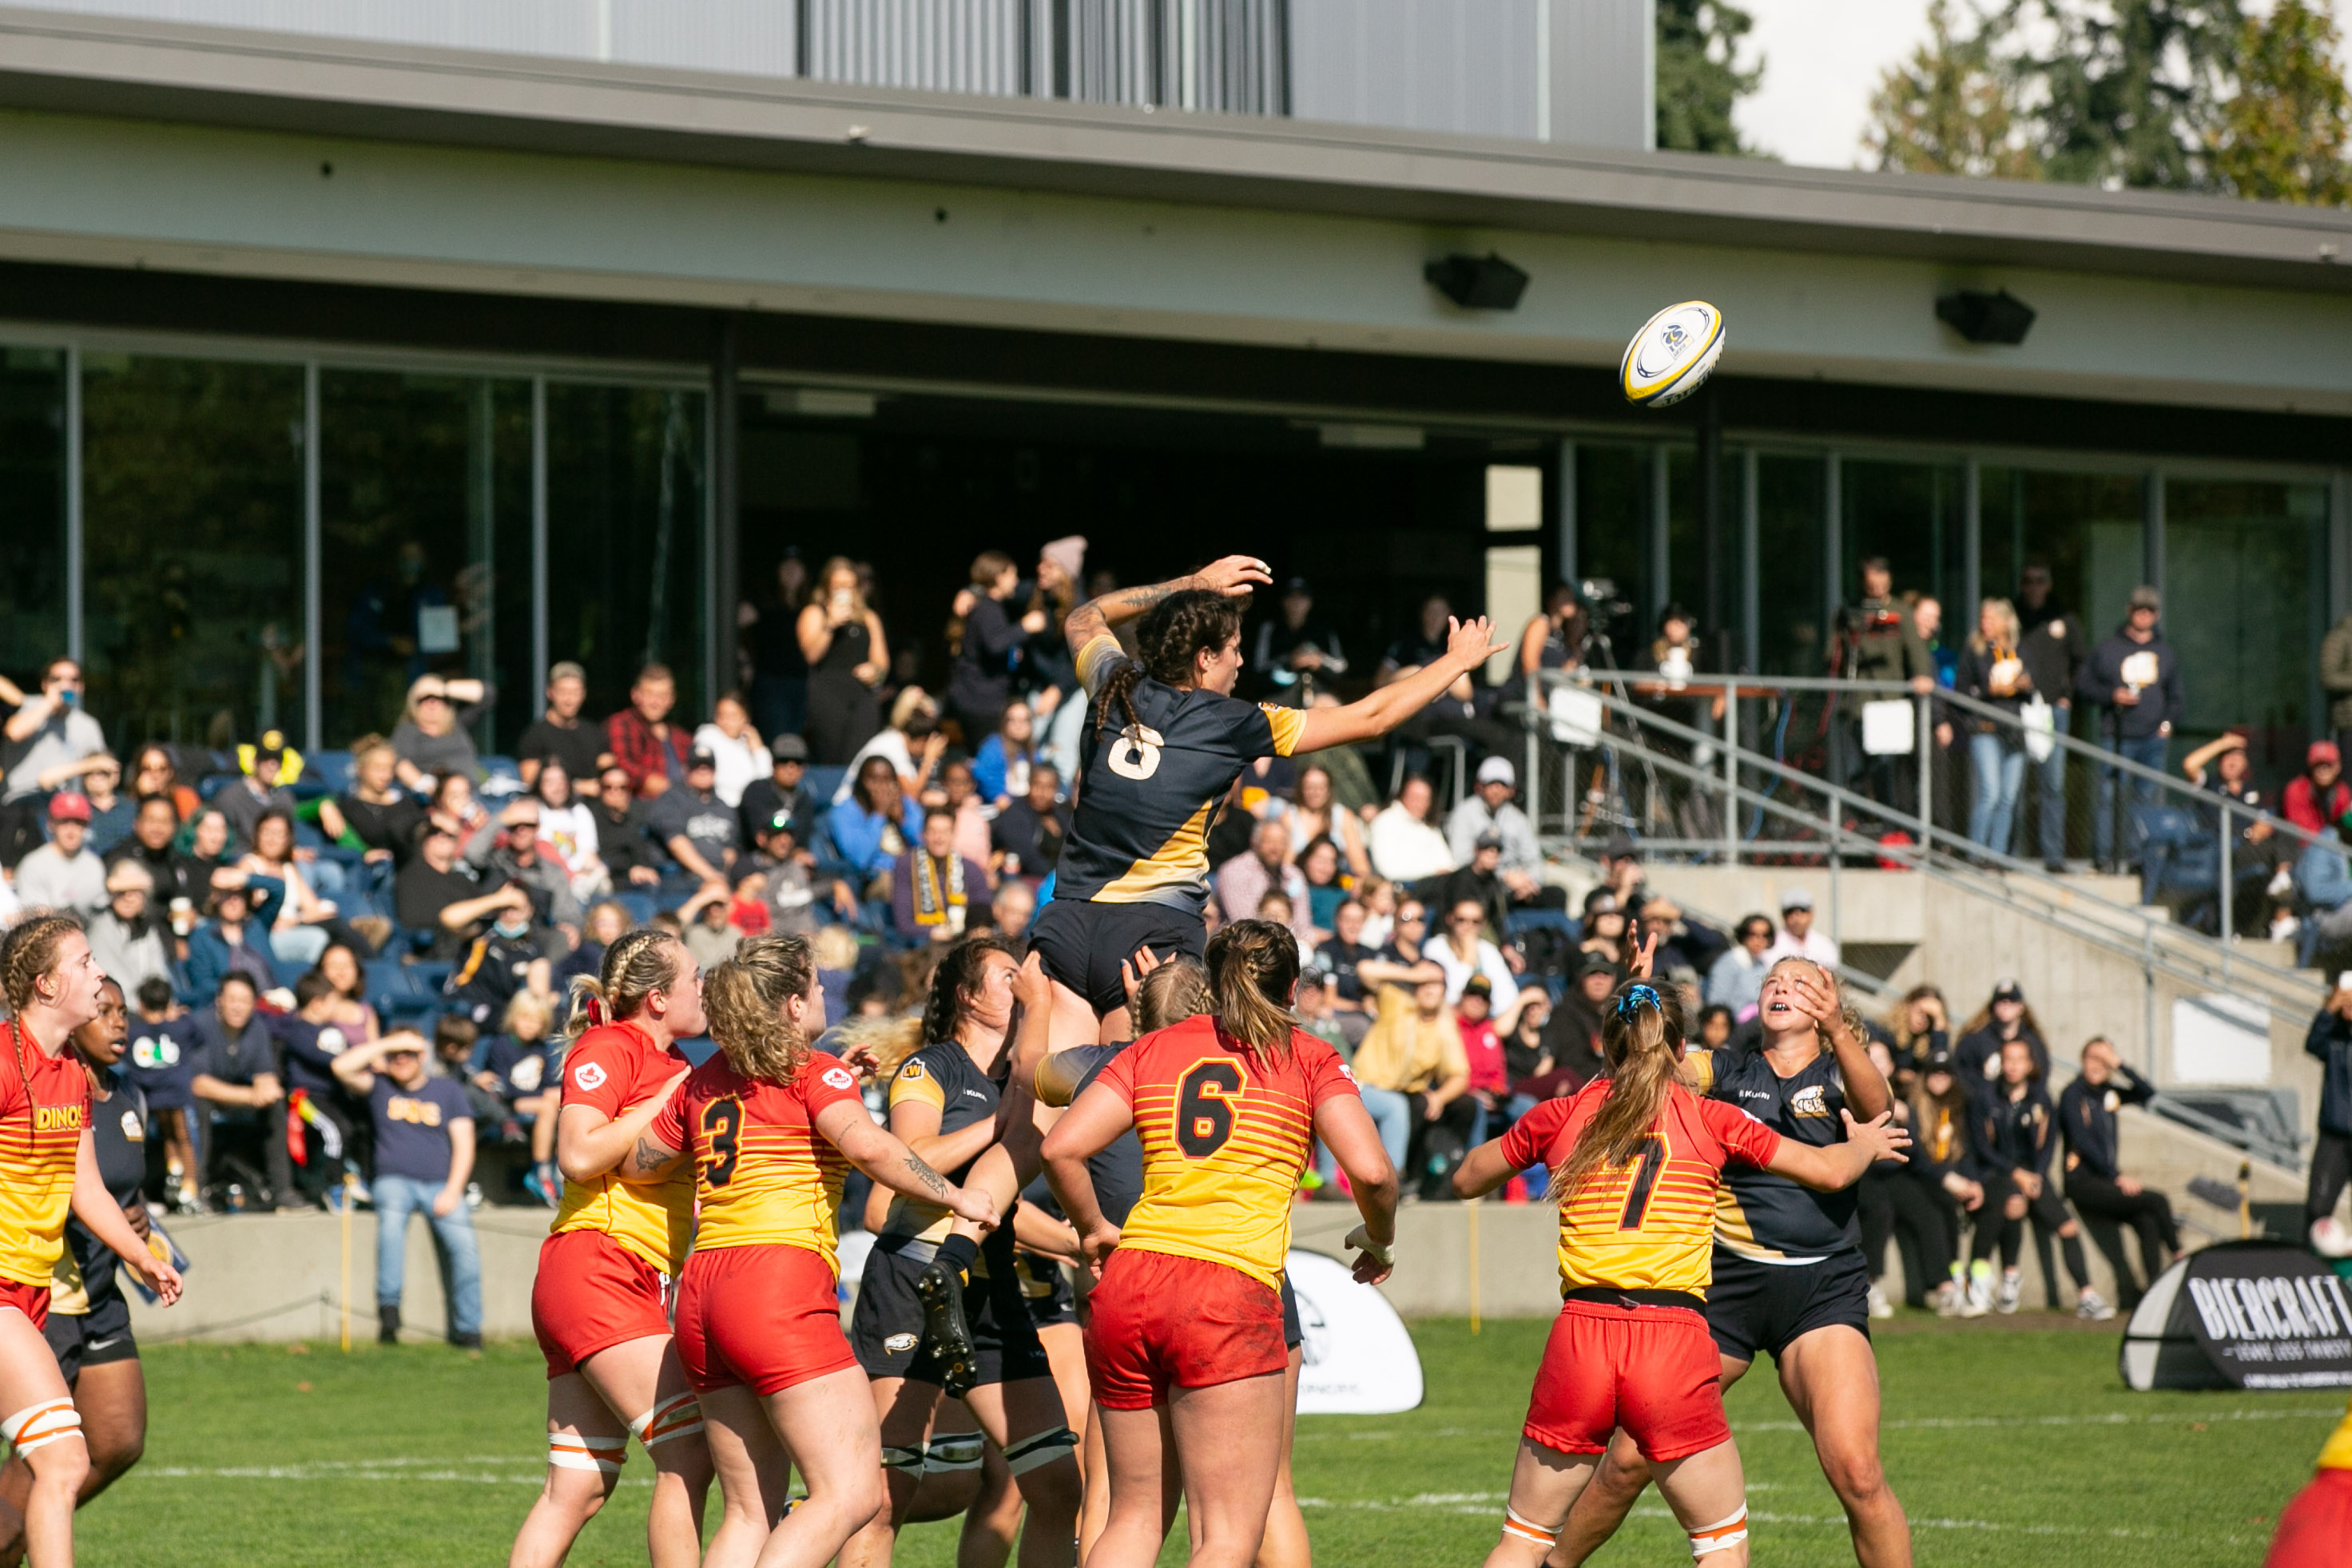 The rugby squad is back in action on October 14, taking on the University of Lethbridge Pronghorns at home.